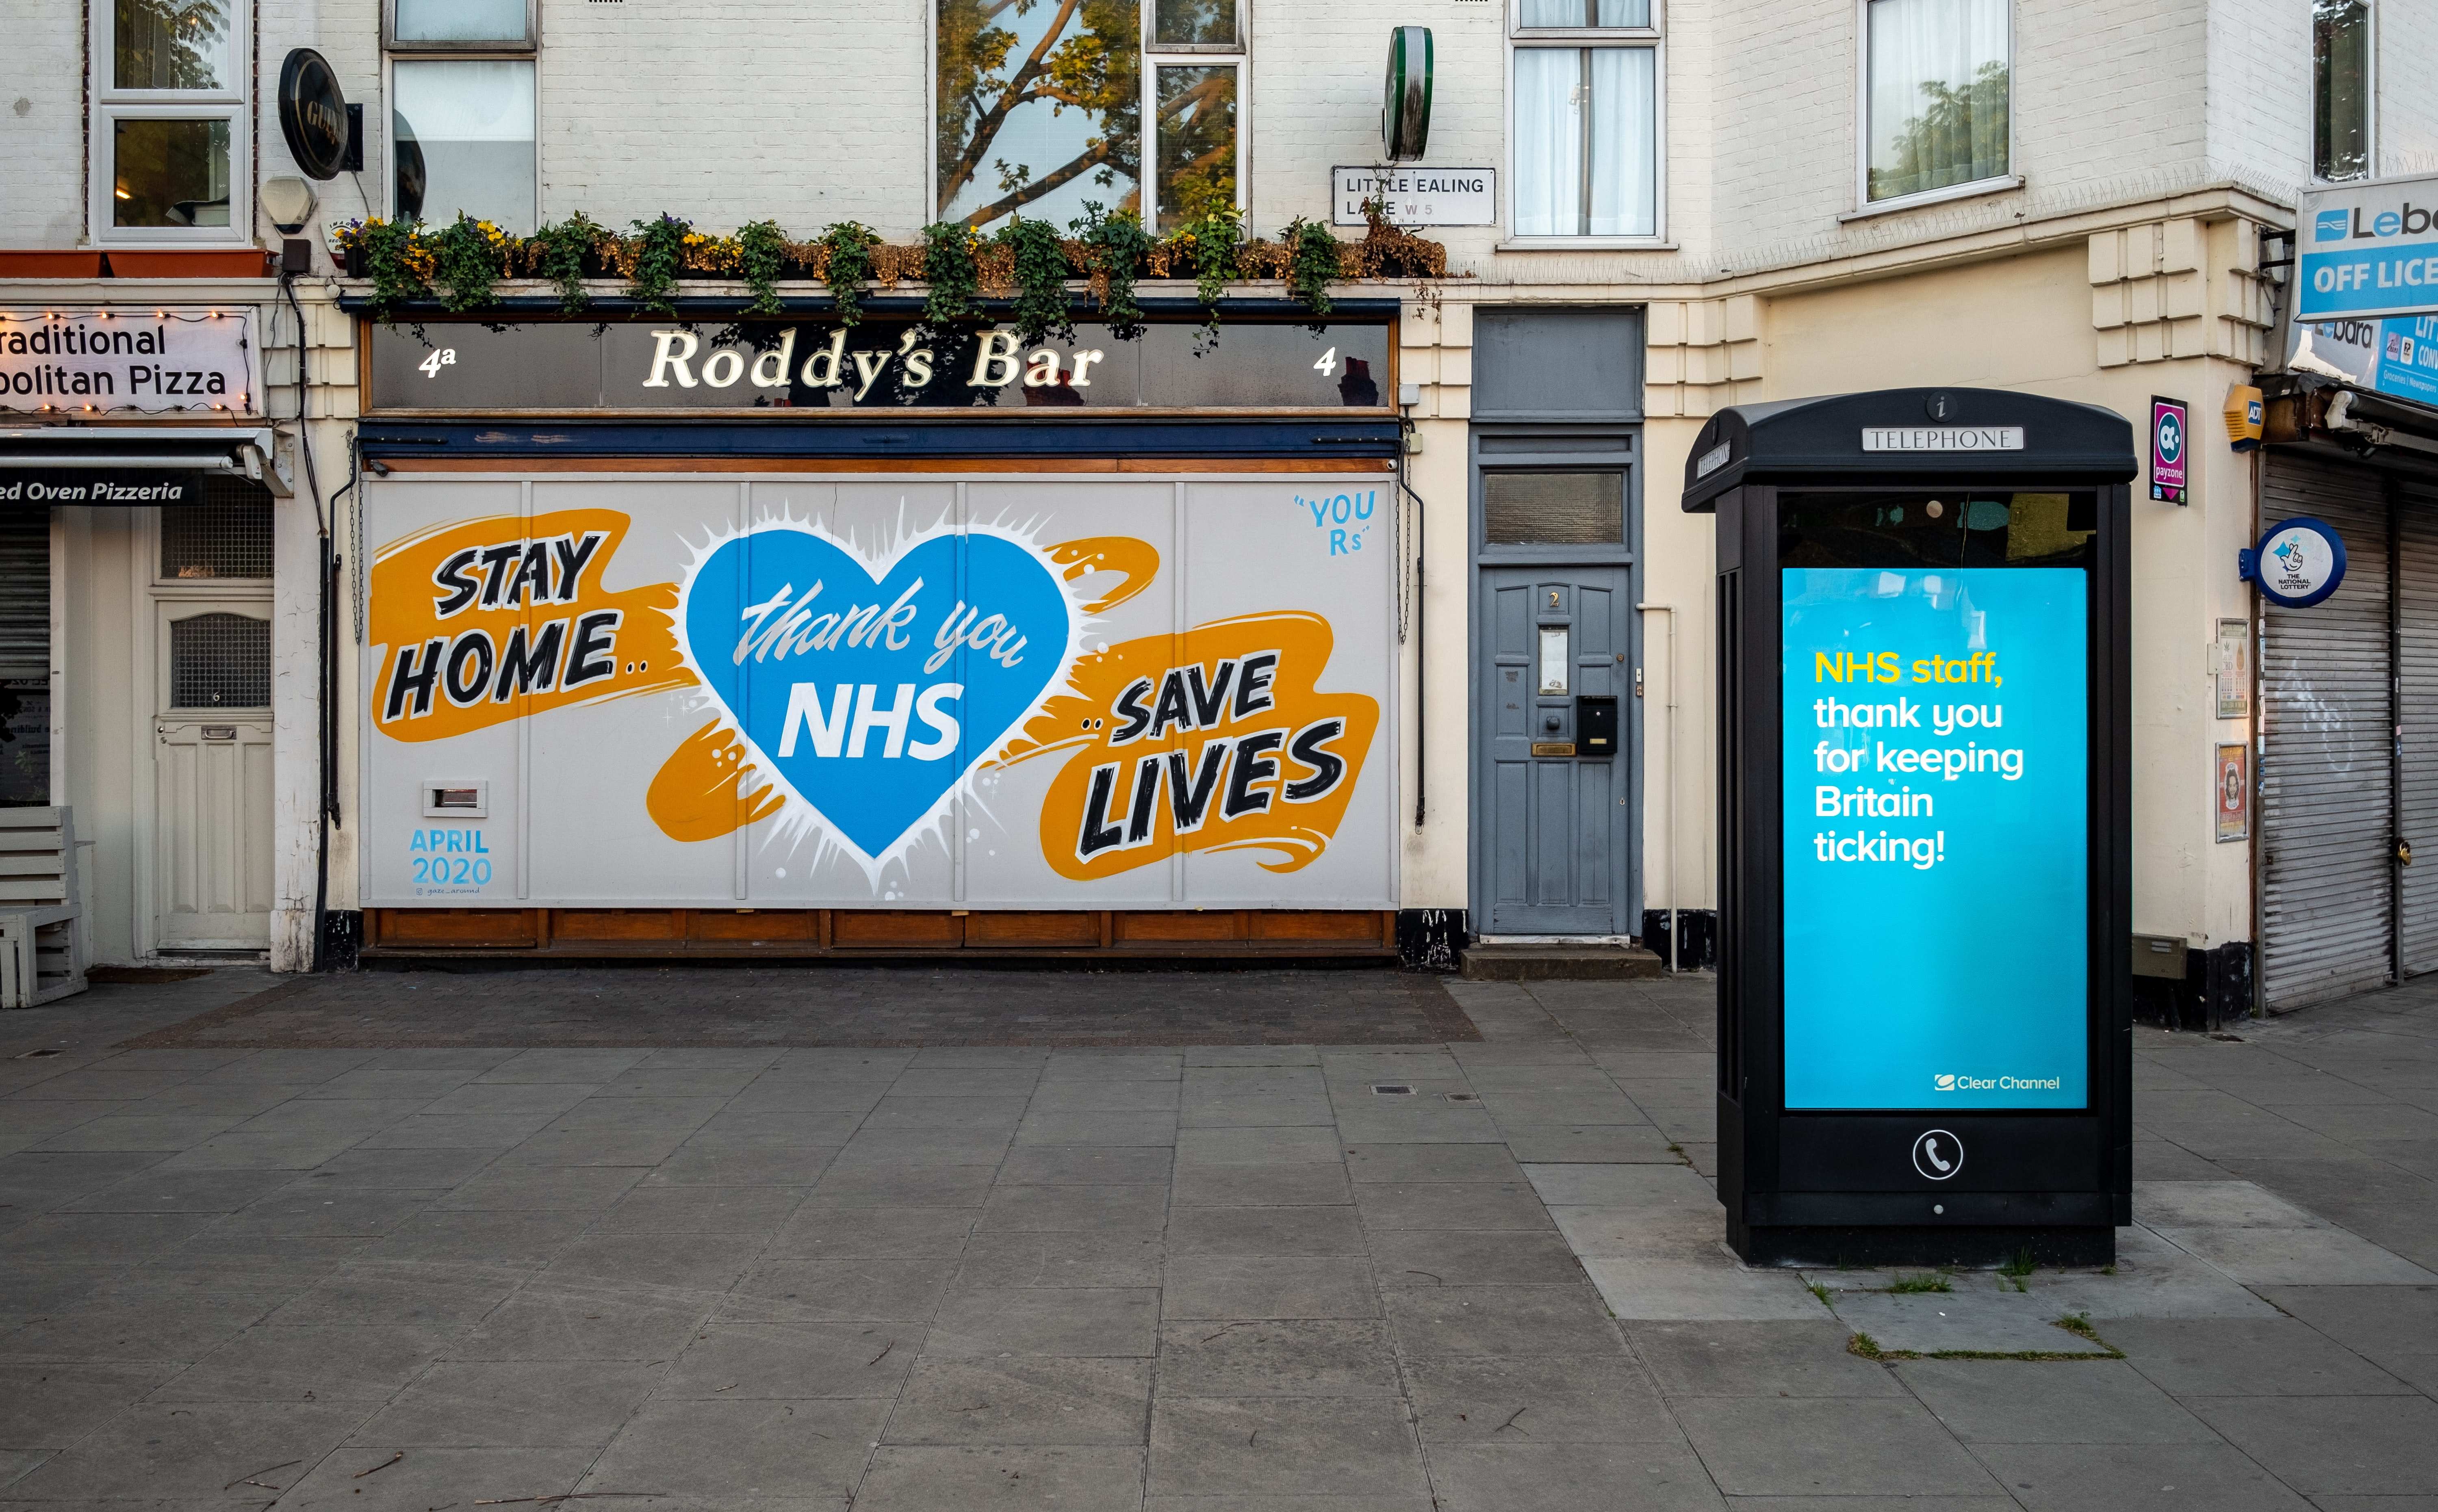 Outside of a bar sayin 'than you NHS' in a blue heart and 'stay home, save lives'